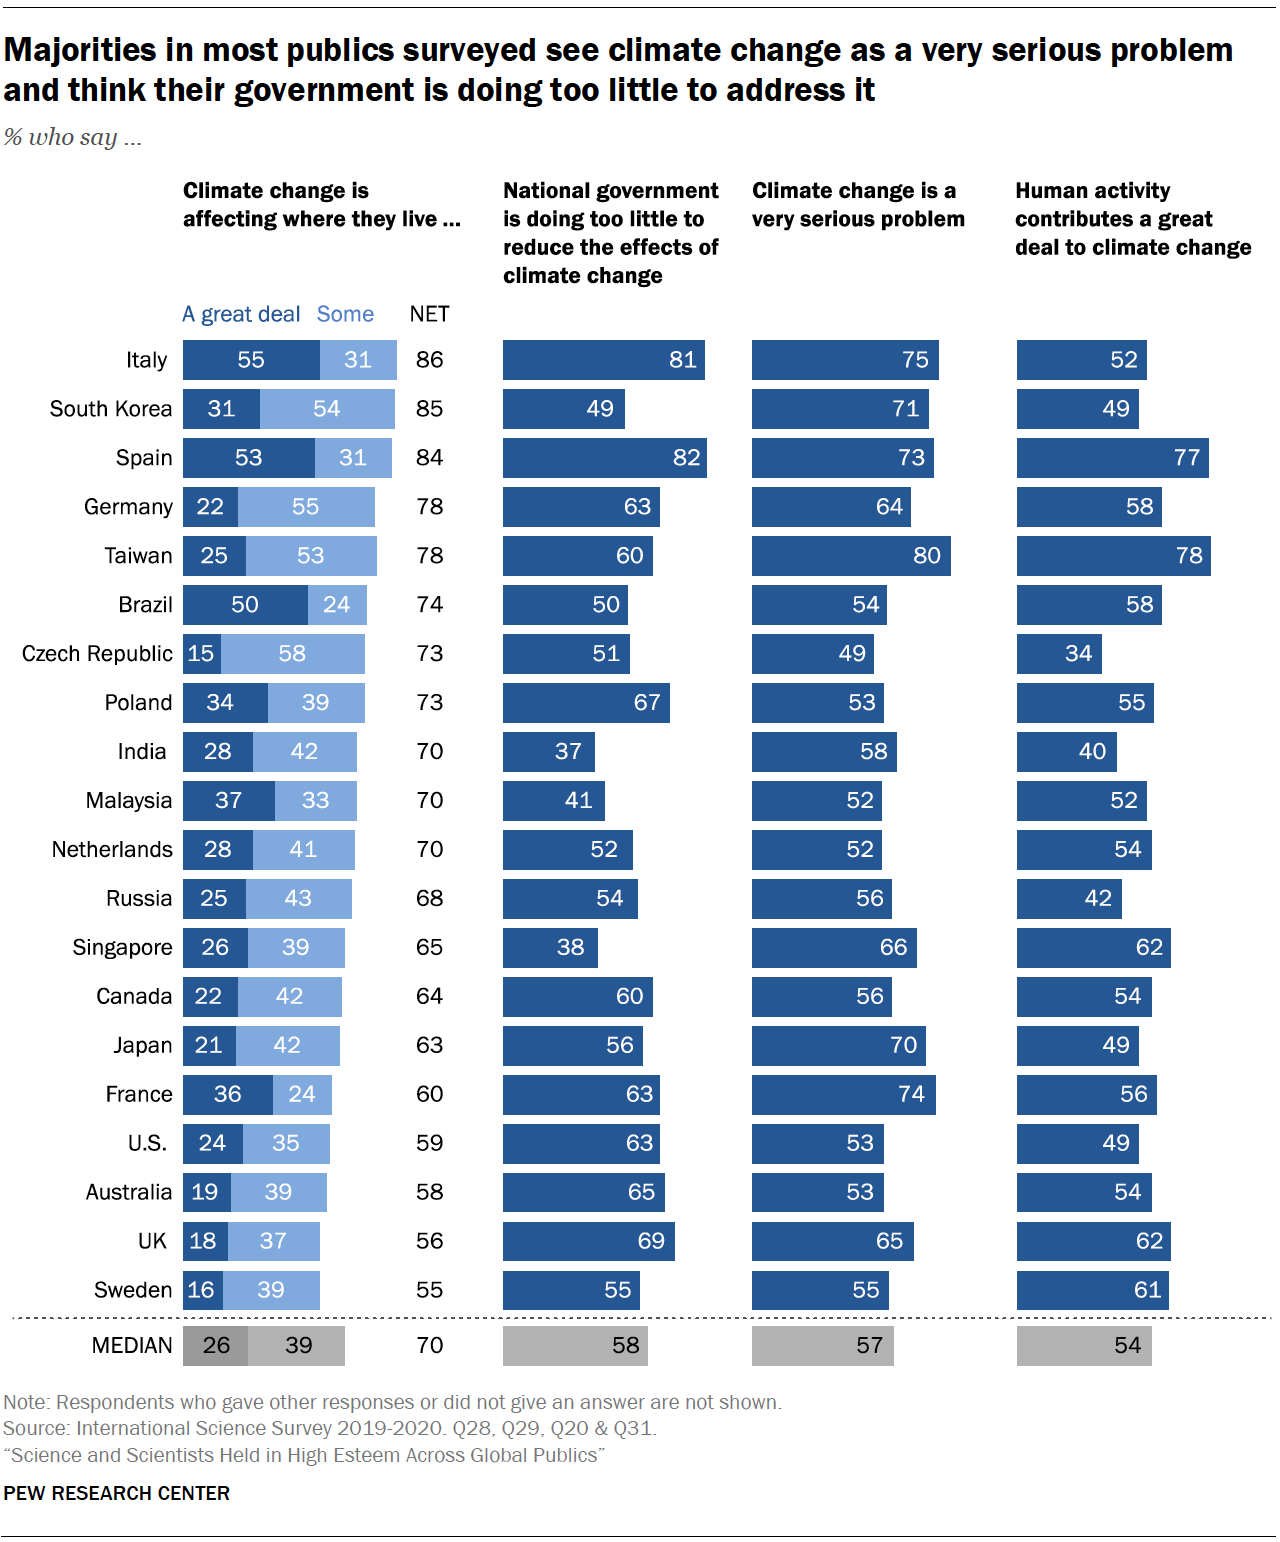 Chart shows majorities in most publics surveyed see climate change as a very serious problem and think their government is doing too little to address it